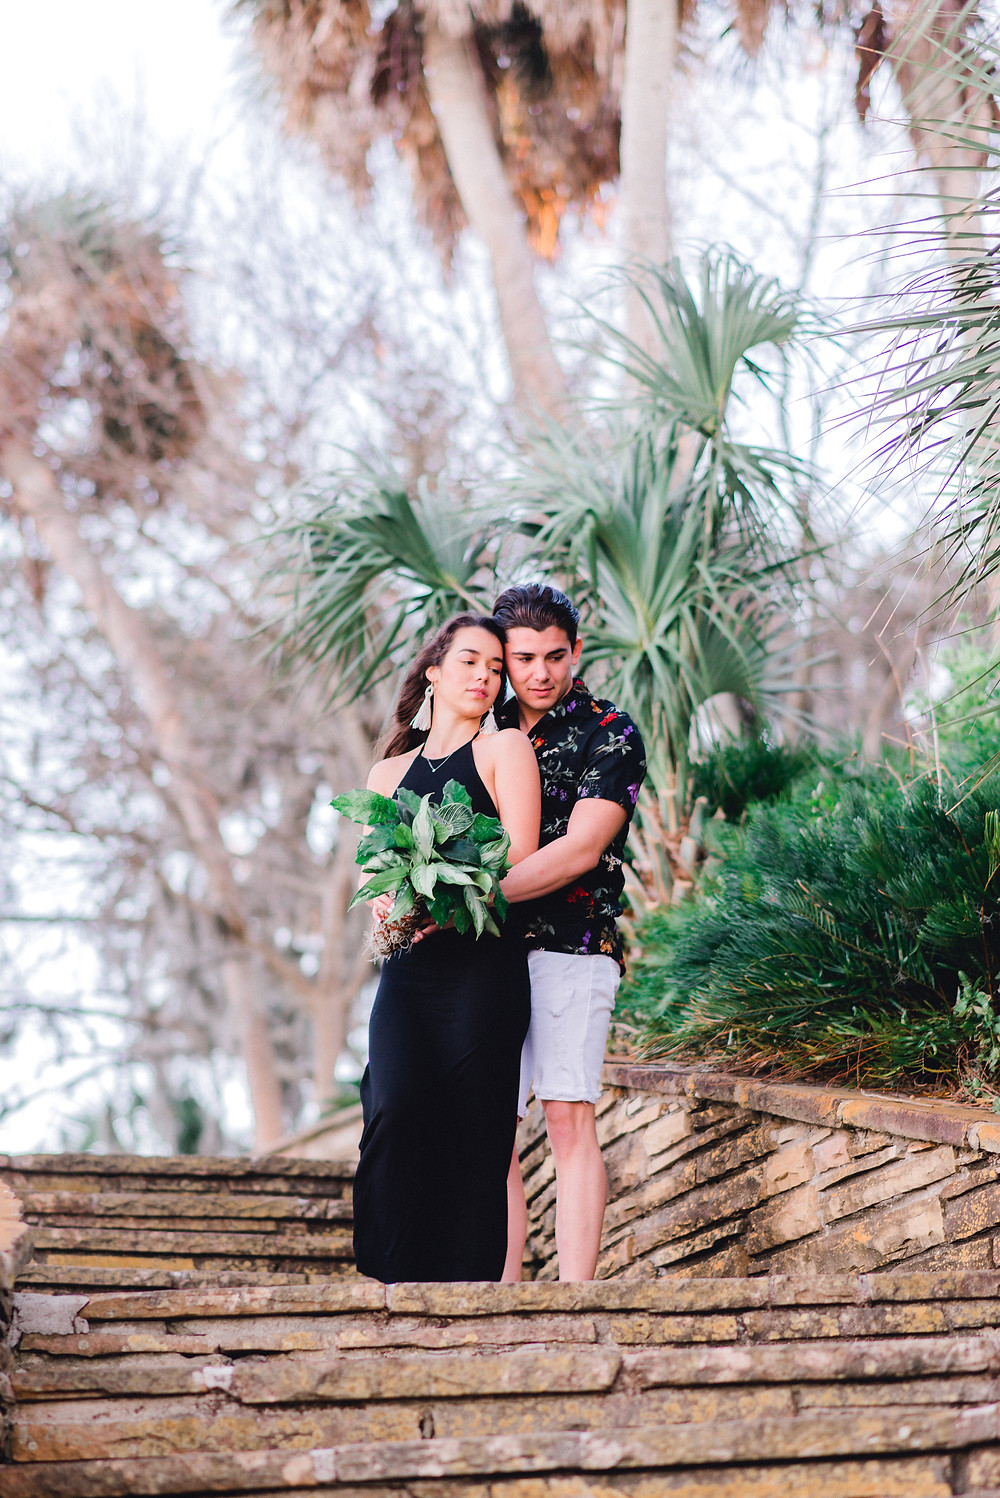 Couples photos taken at Philippe Park in Safety Harbor, Florida by photographer Nina Bashaw